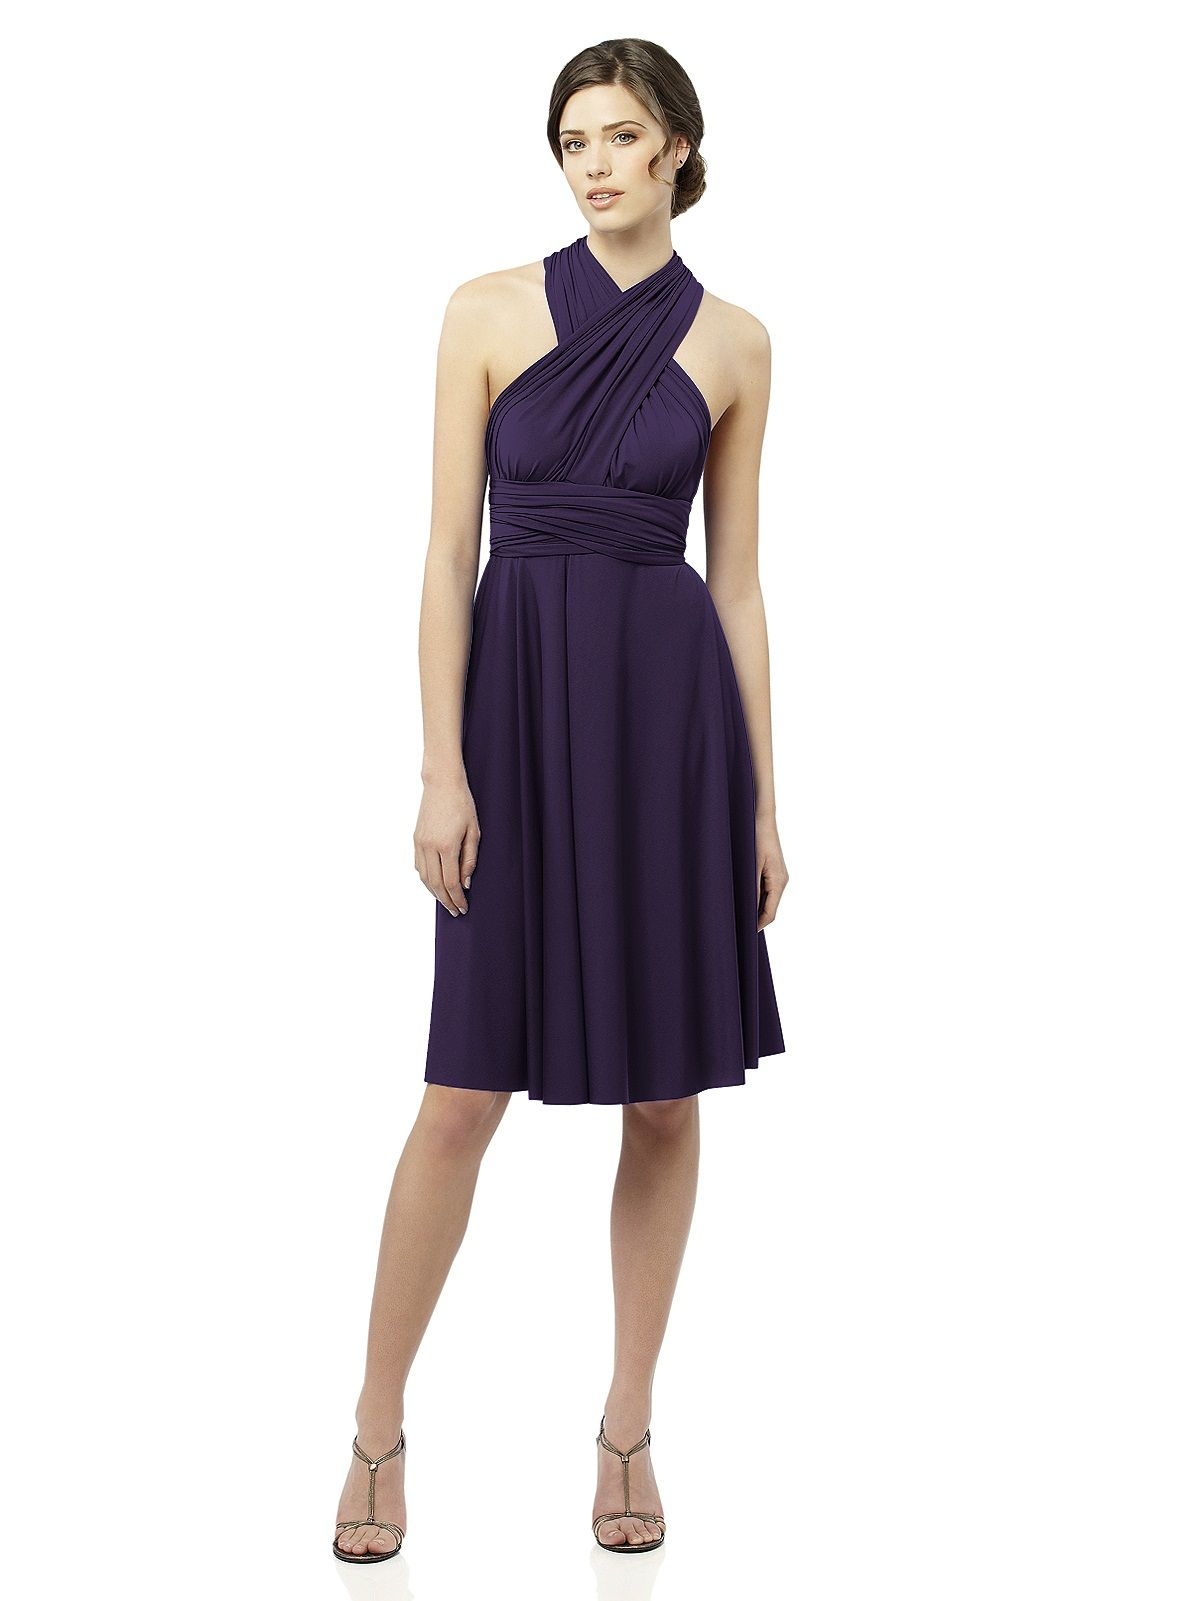 Twist wrap dress short rehearsal dinners wedding and weddings